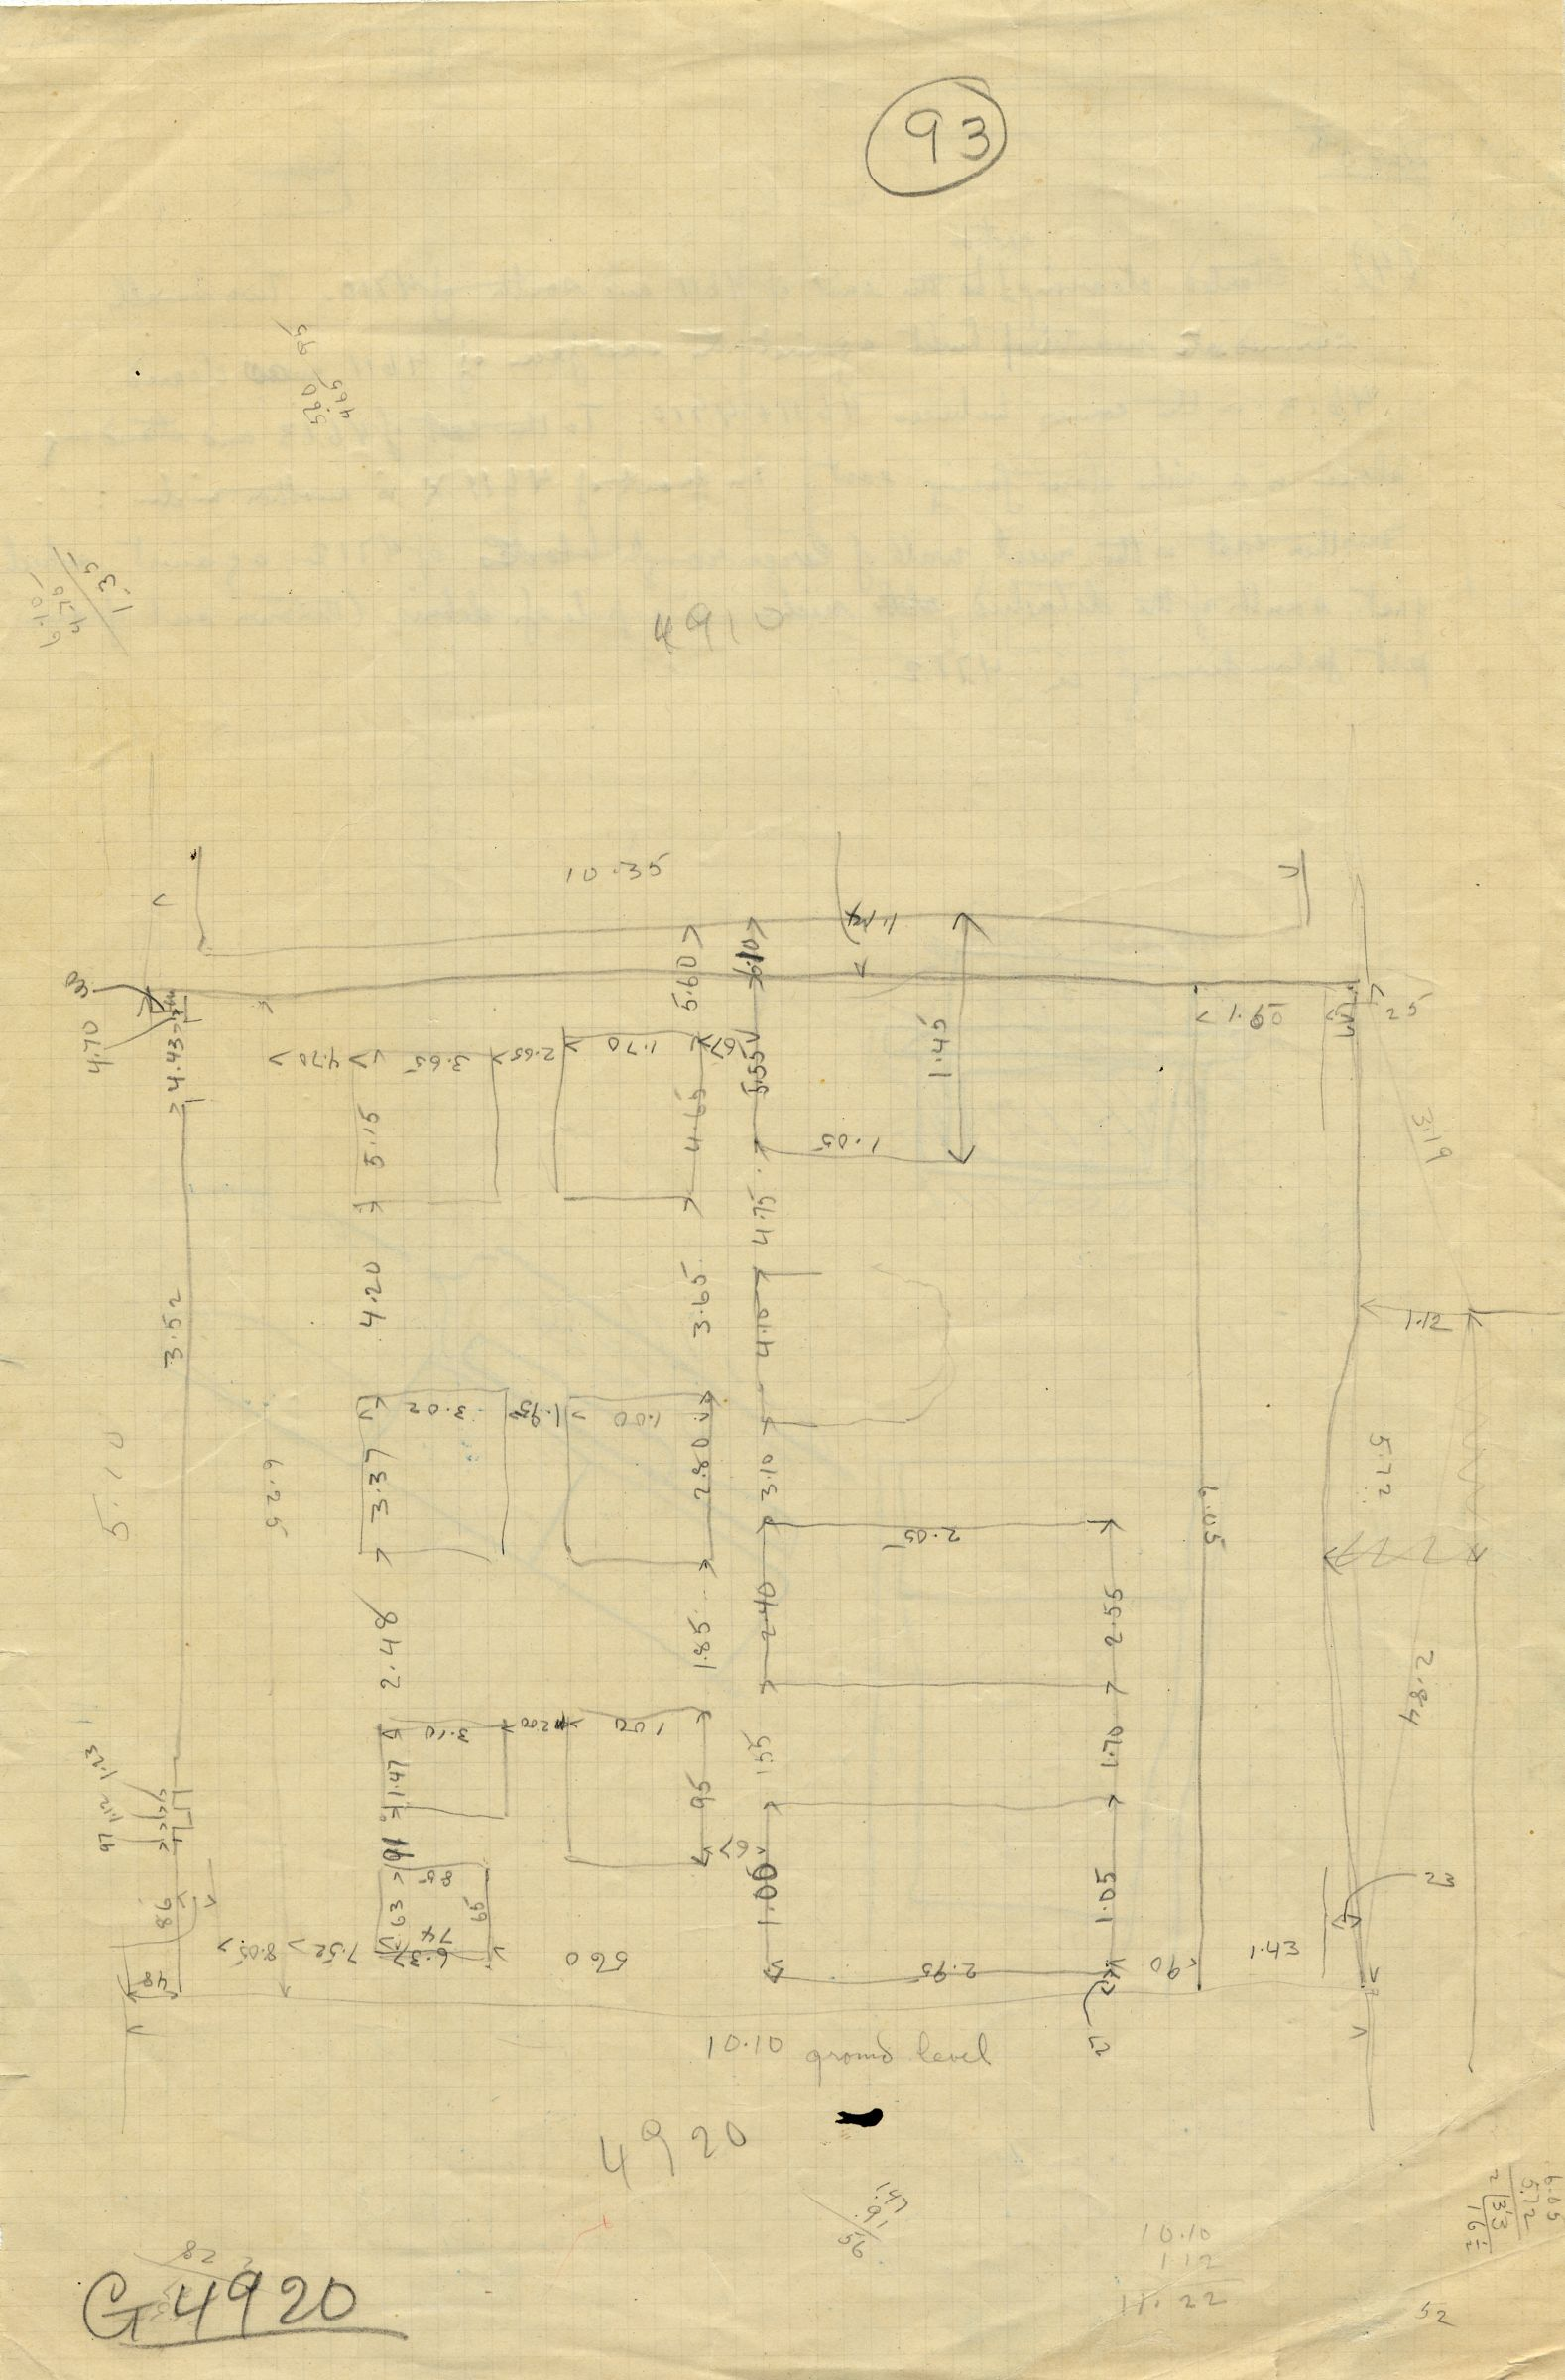 Maps and plans: Sketch plan of G 4911